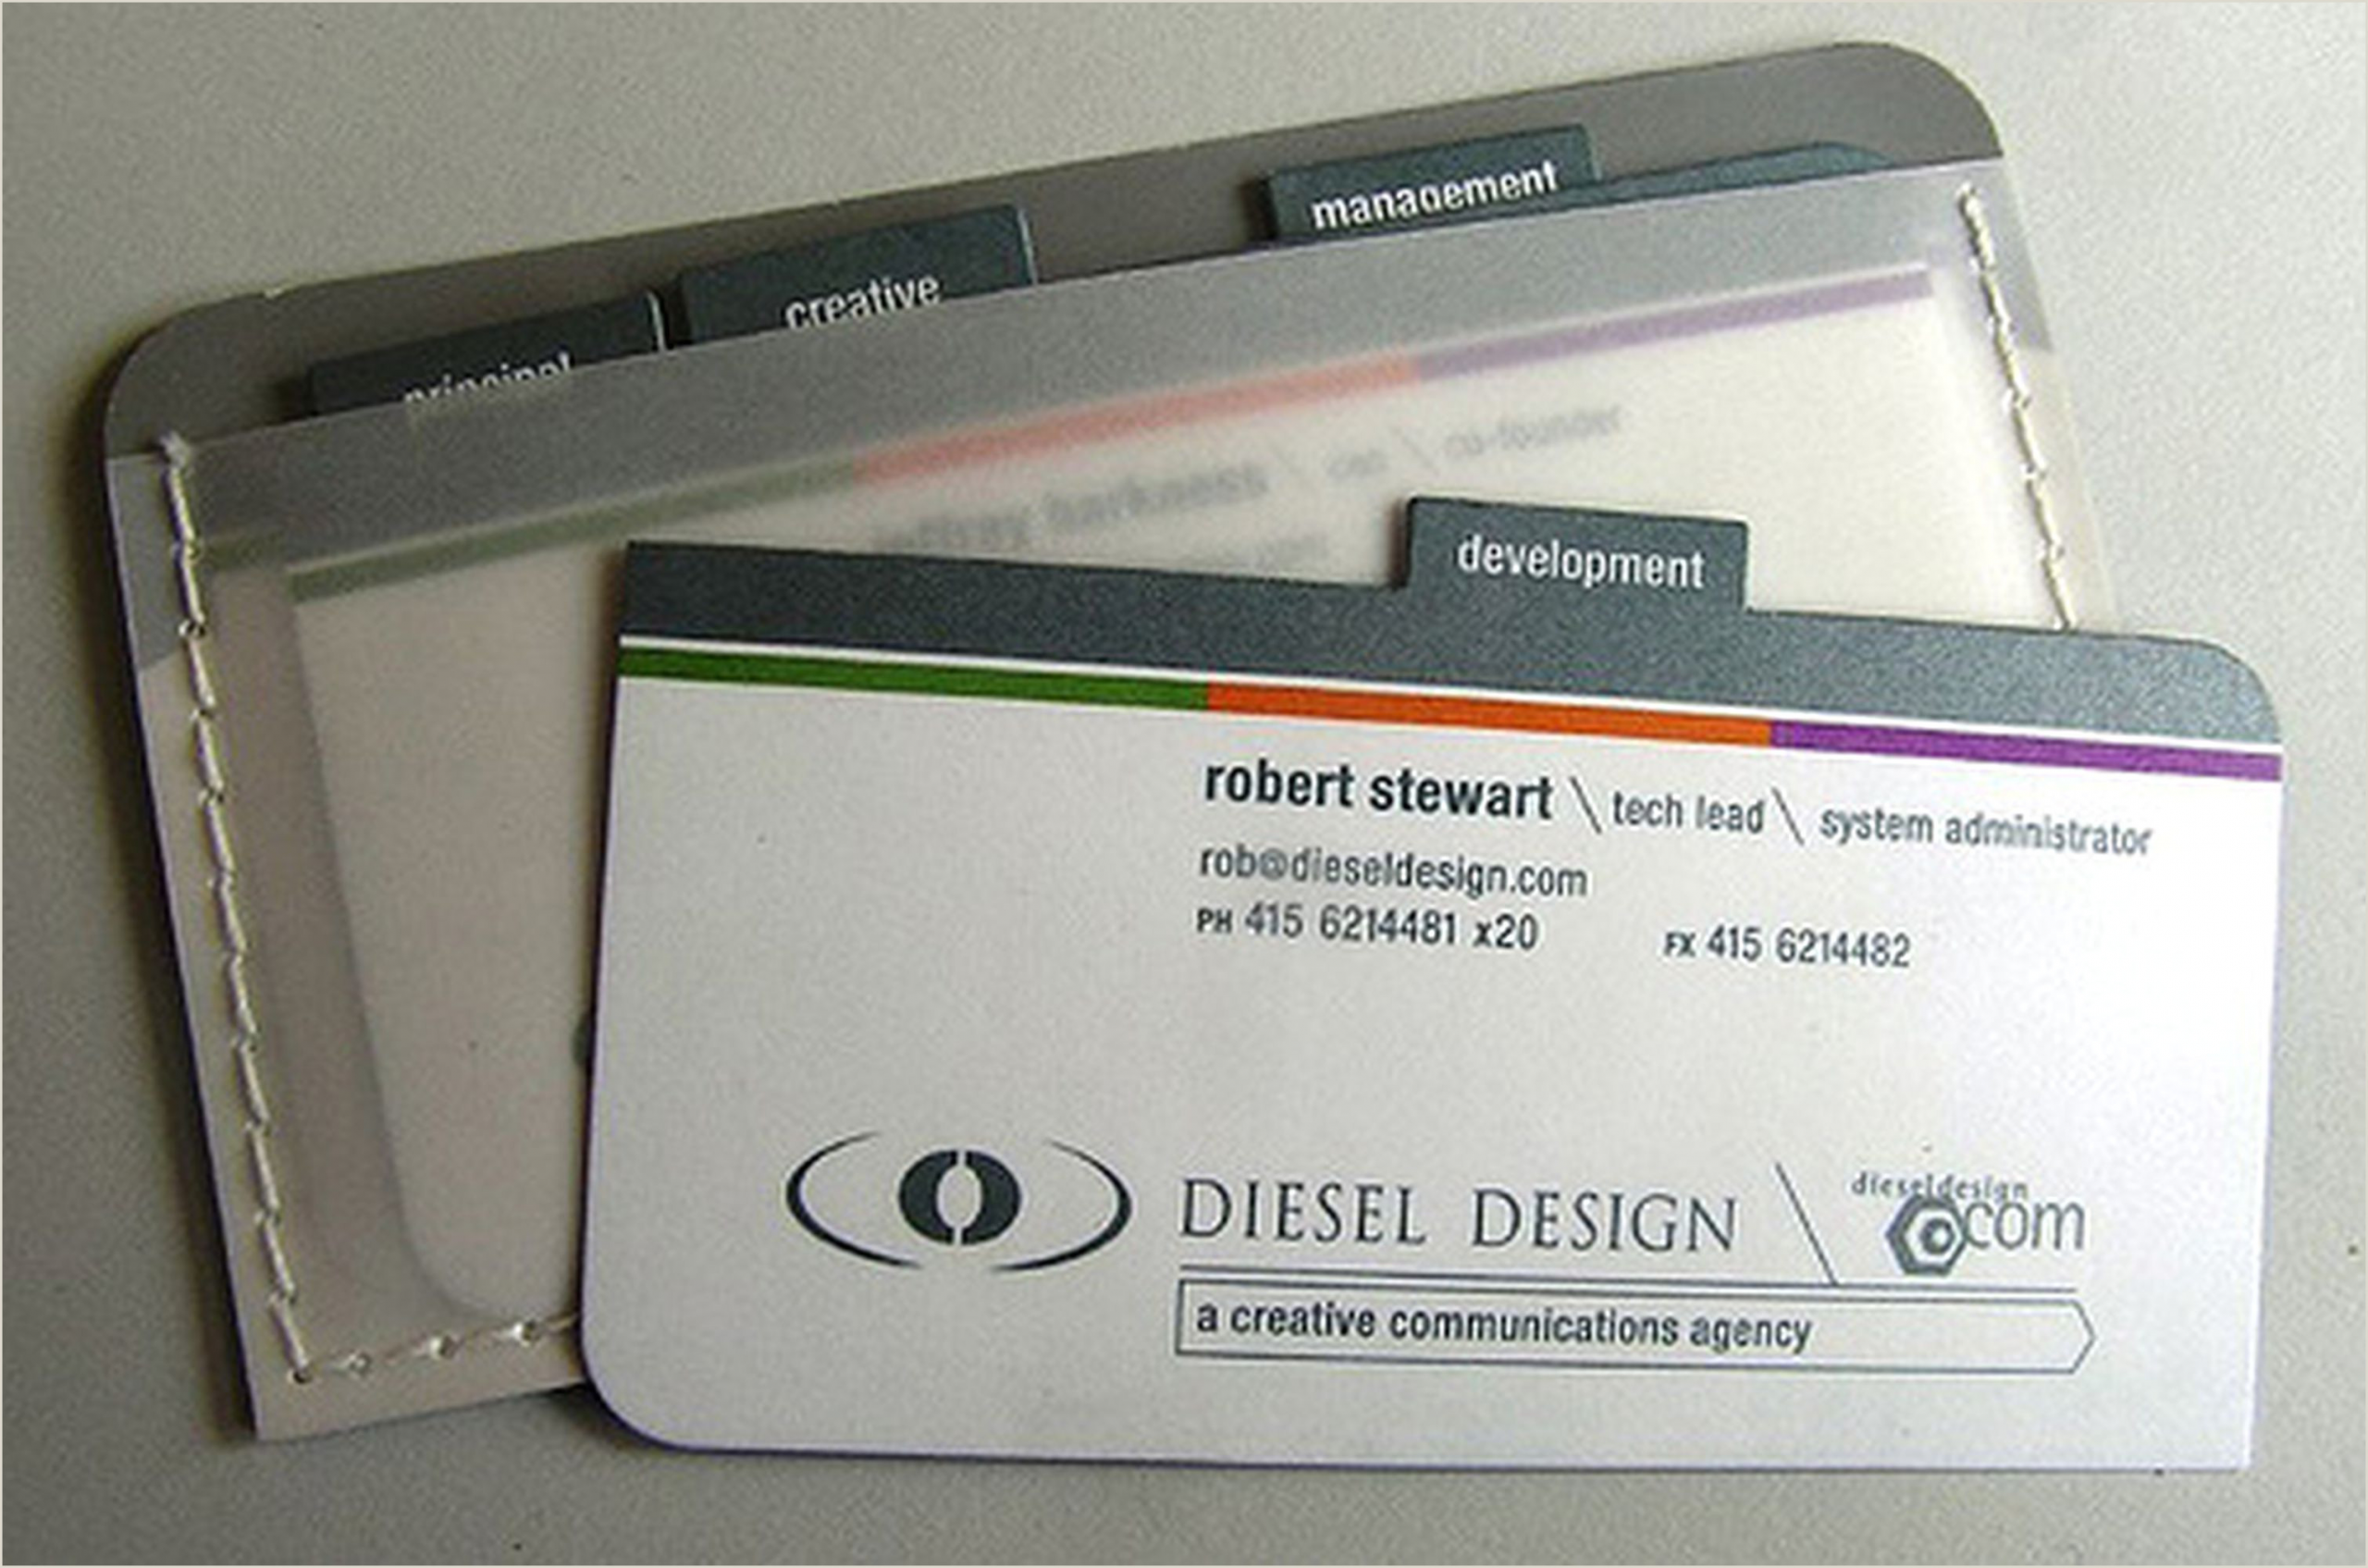 Most Unique Titles On Business Cards 30 Unconventional Business Cards